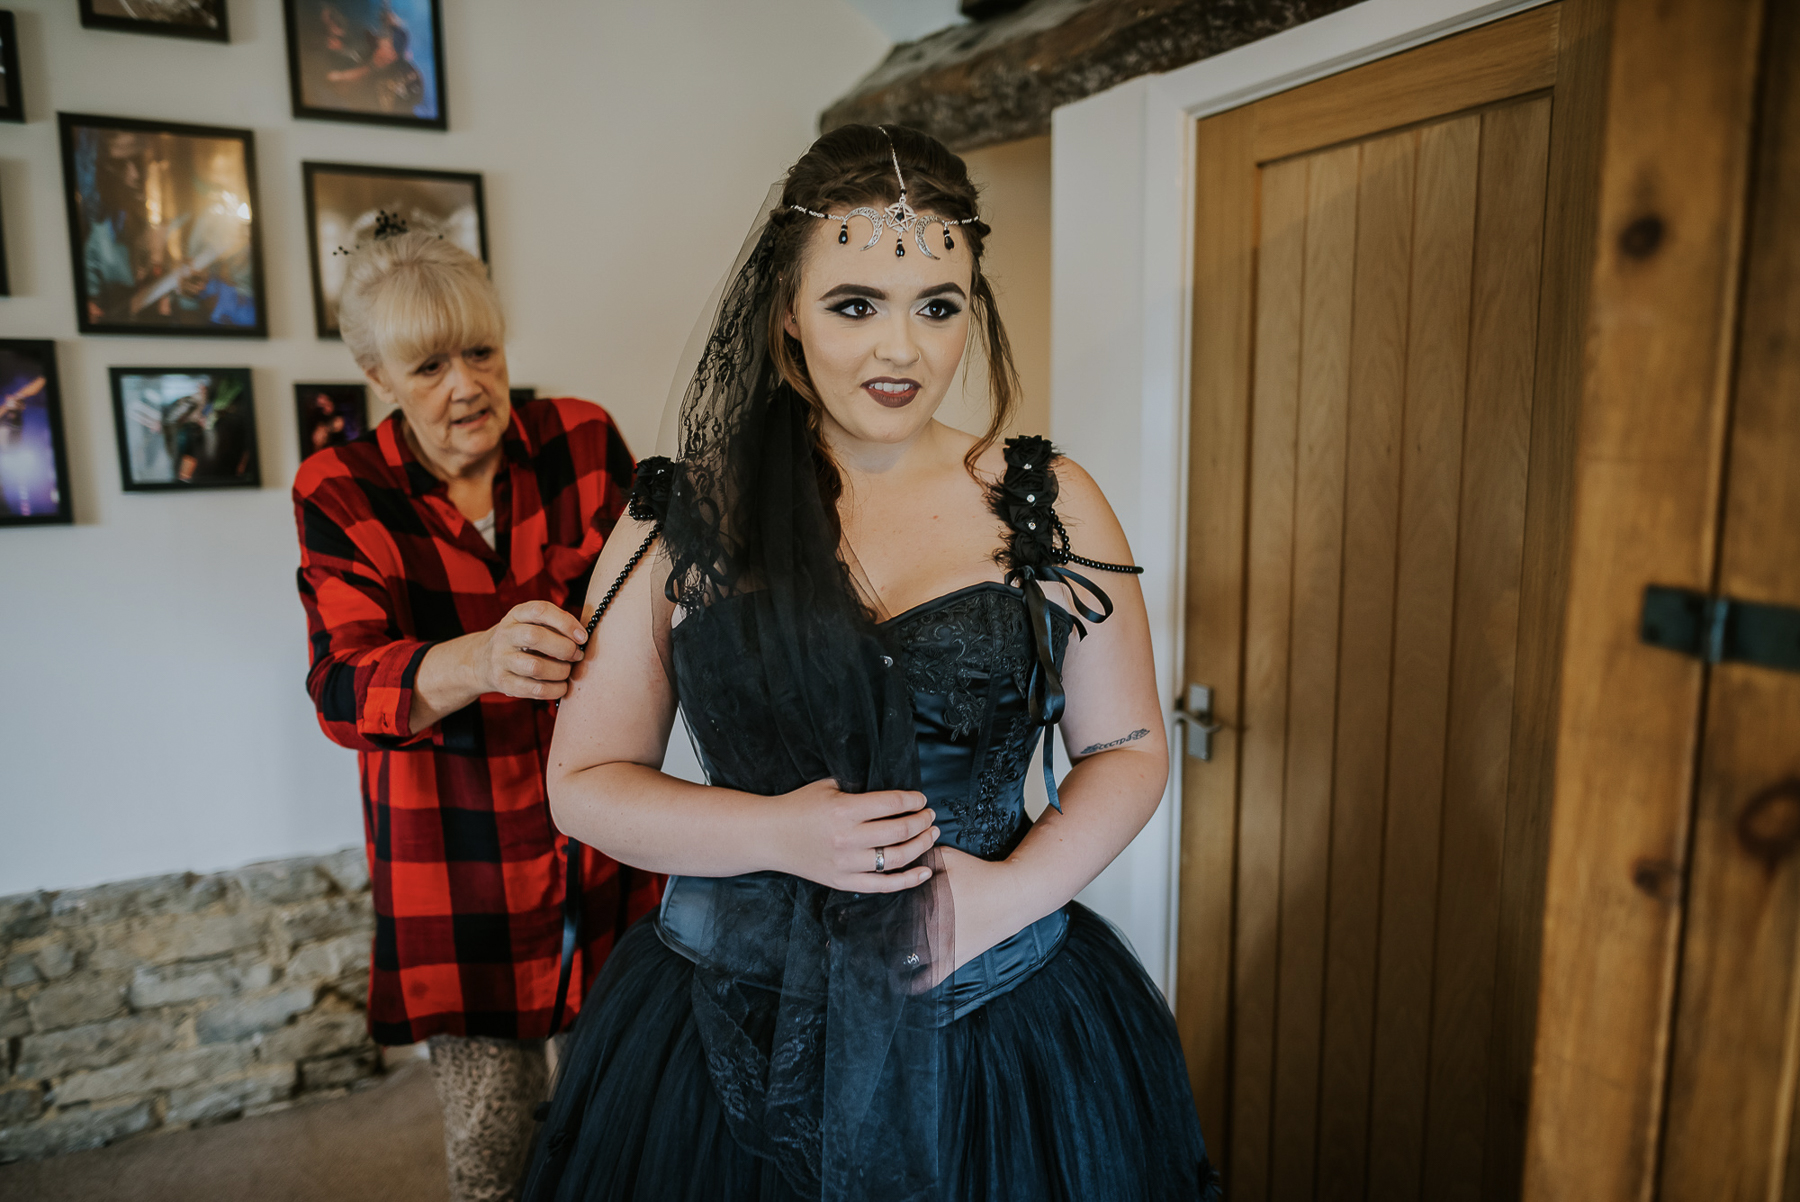 Alternative_Manchester_Wedding_Photography_The_Pin-Up_Bride_Photography-76.jpg